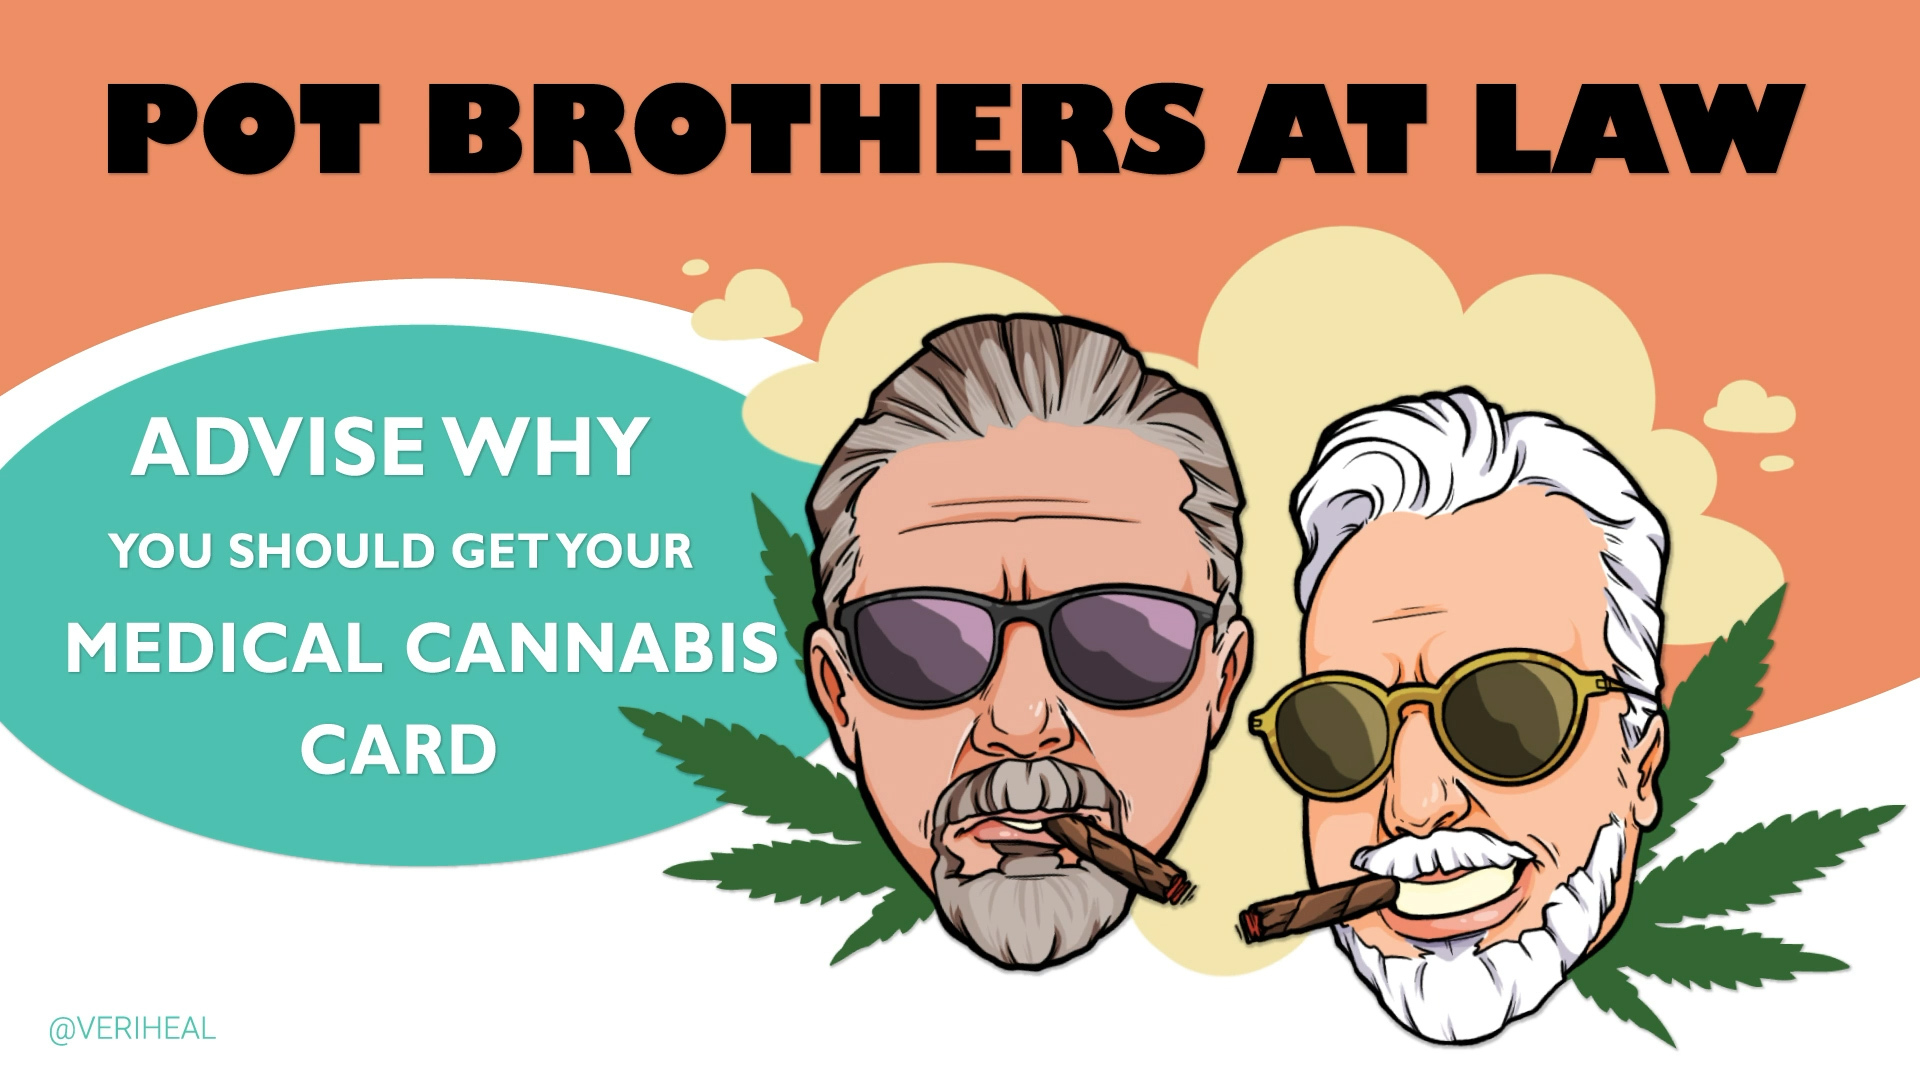 Pot Brothers at Law Advise Why You Should Get Your Medical Cannabis Card